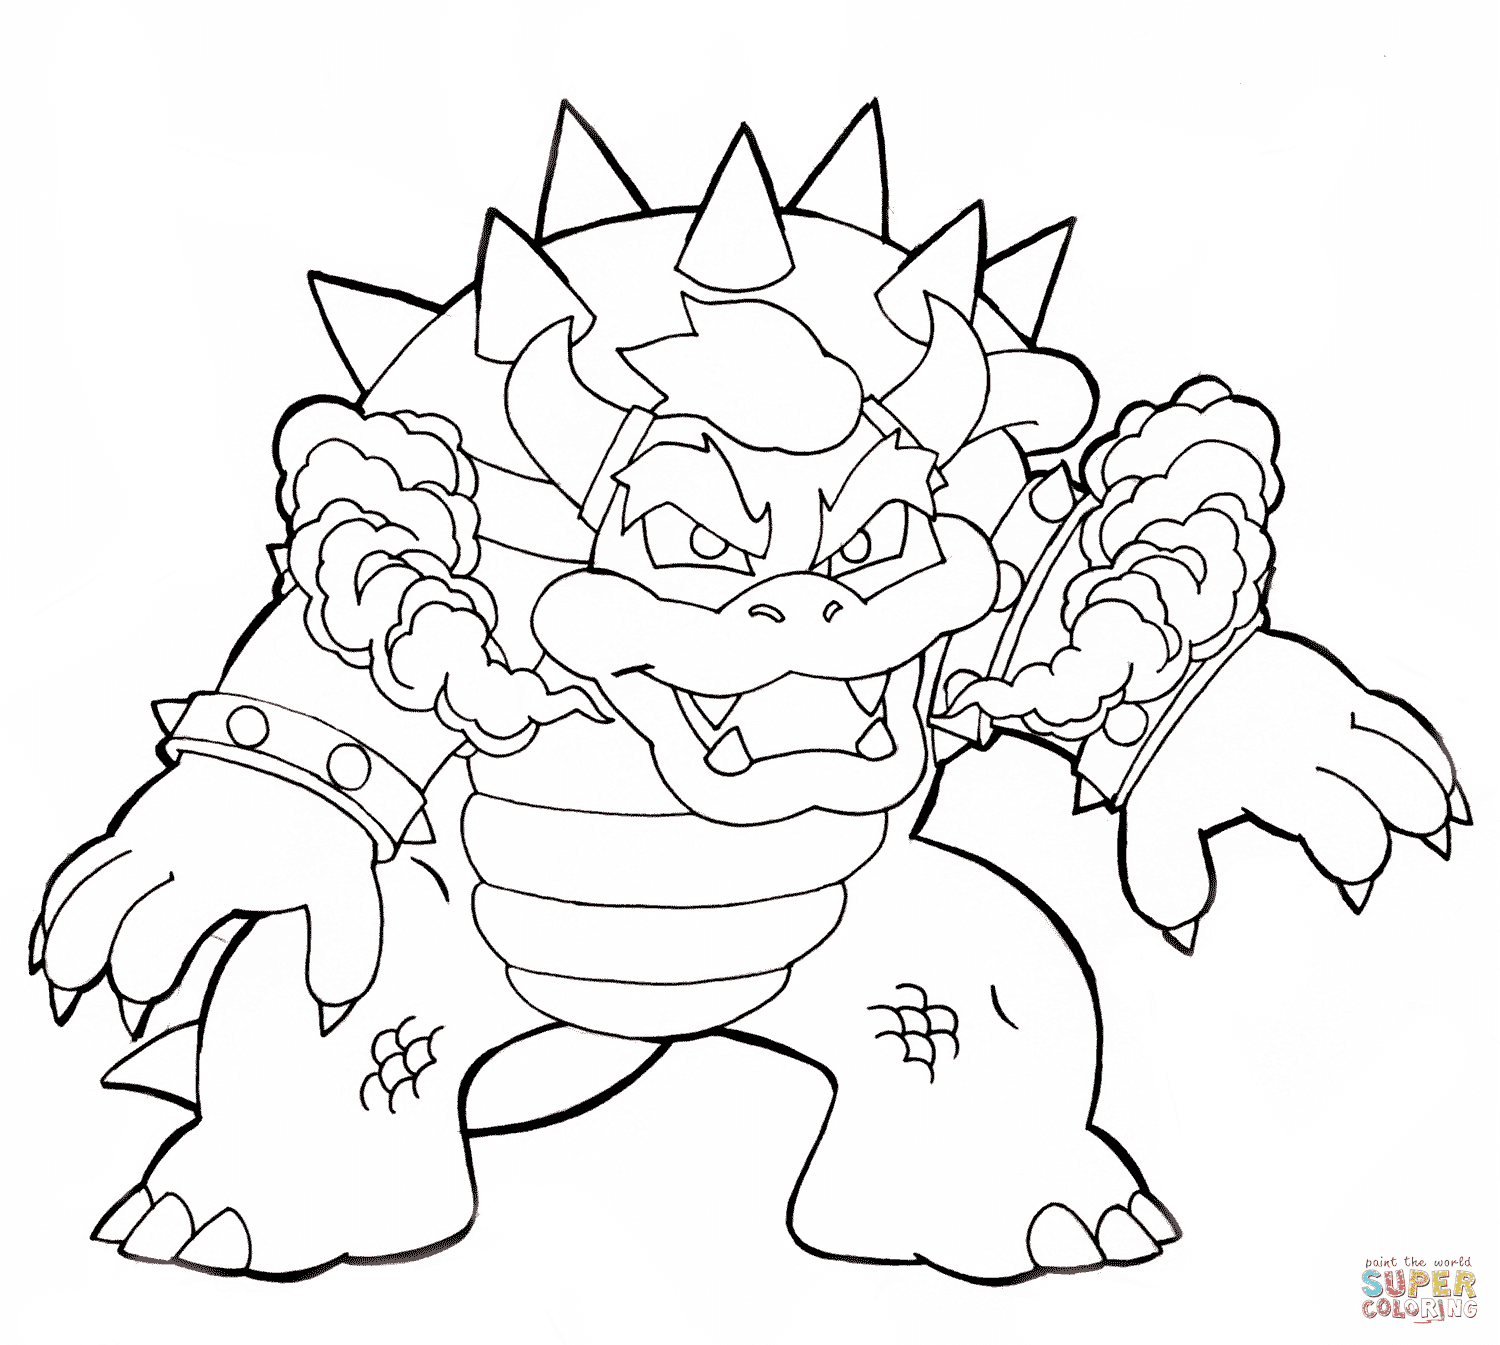 the Bowser coloring